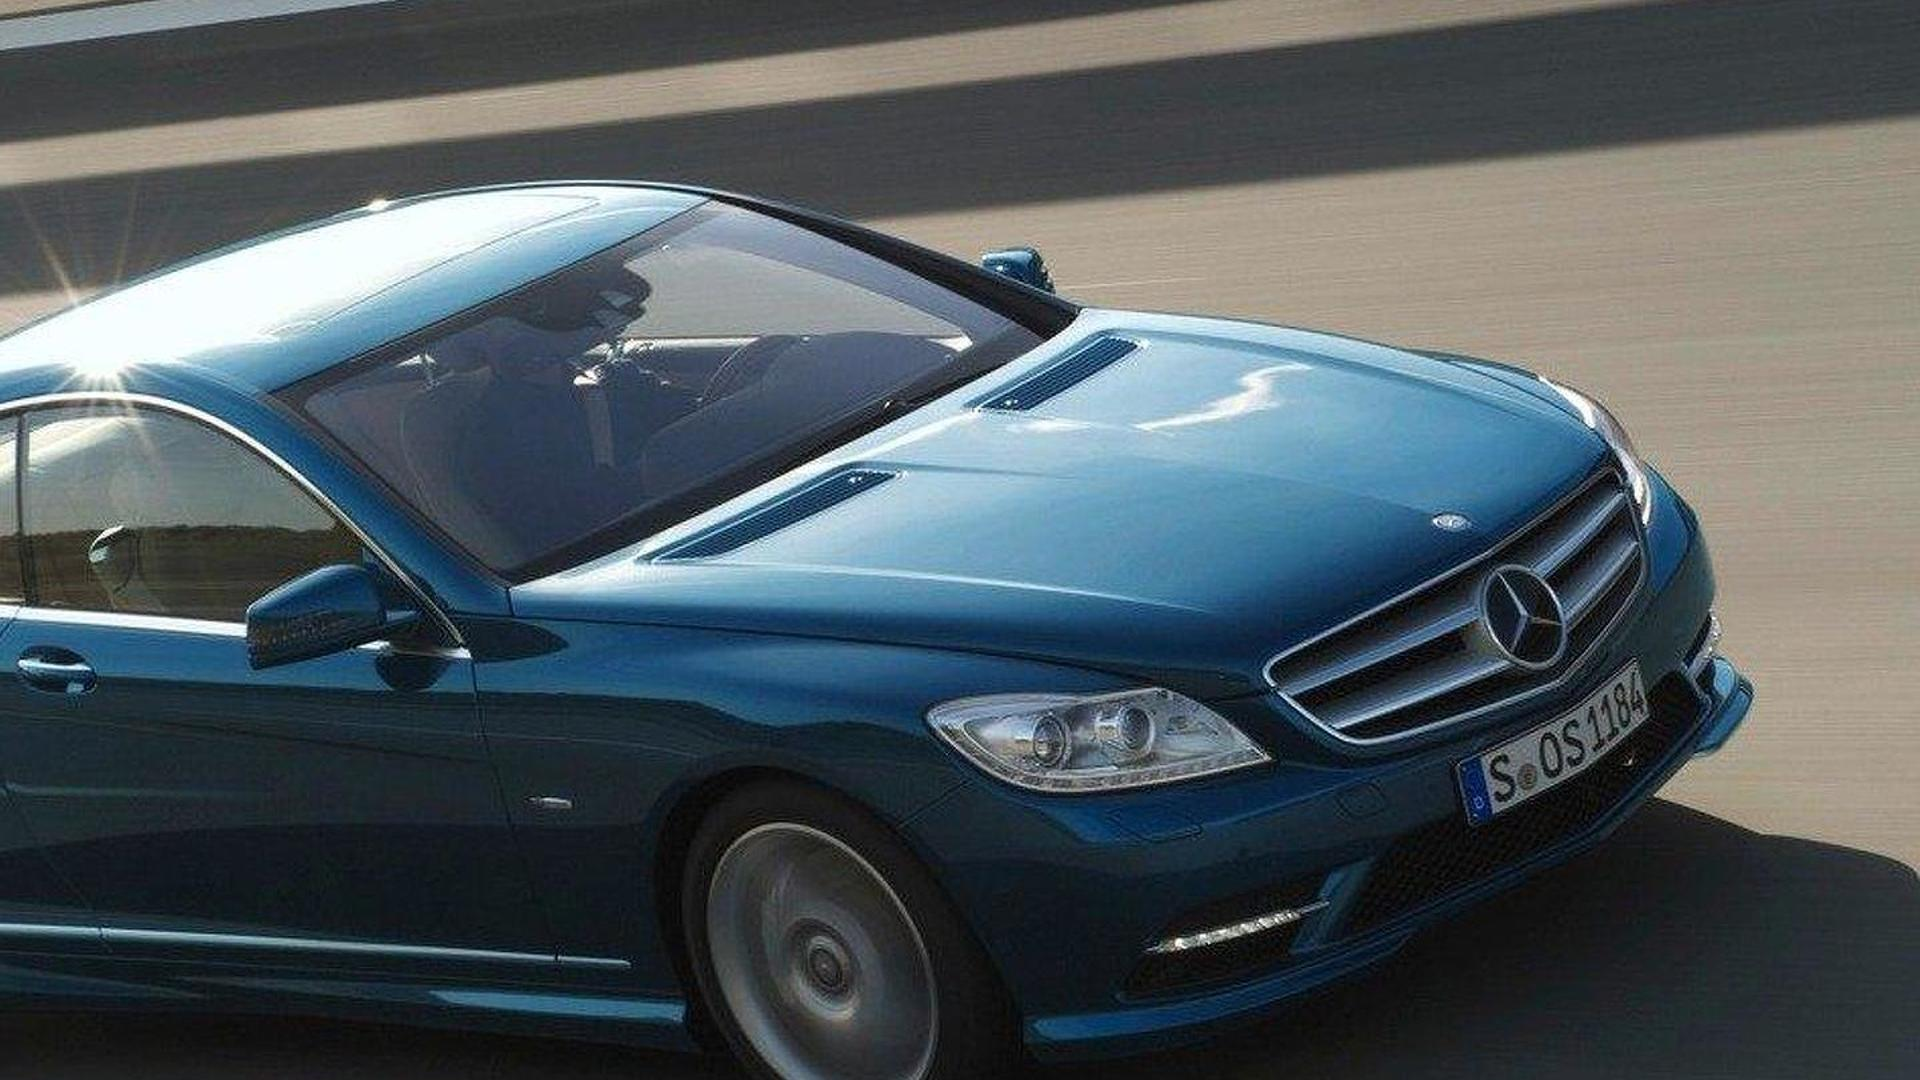 2017 Mercedes Benz Cl Facelift Revealed Public Debut At Goodwood Fos 2010 Video